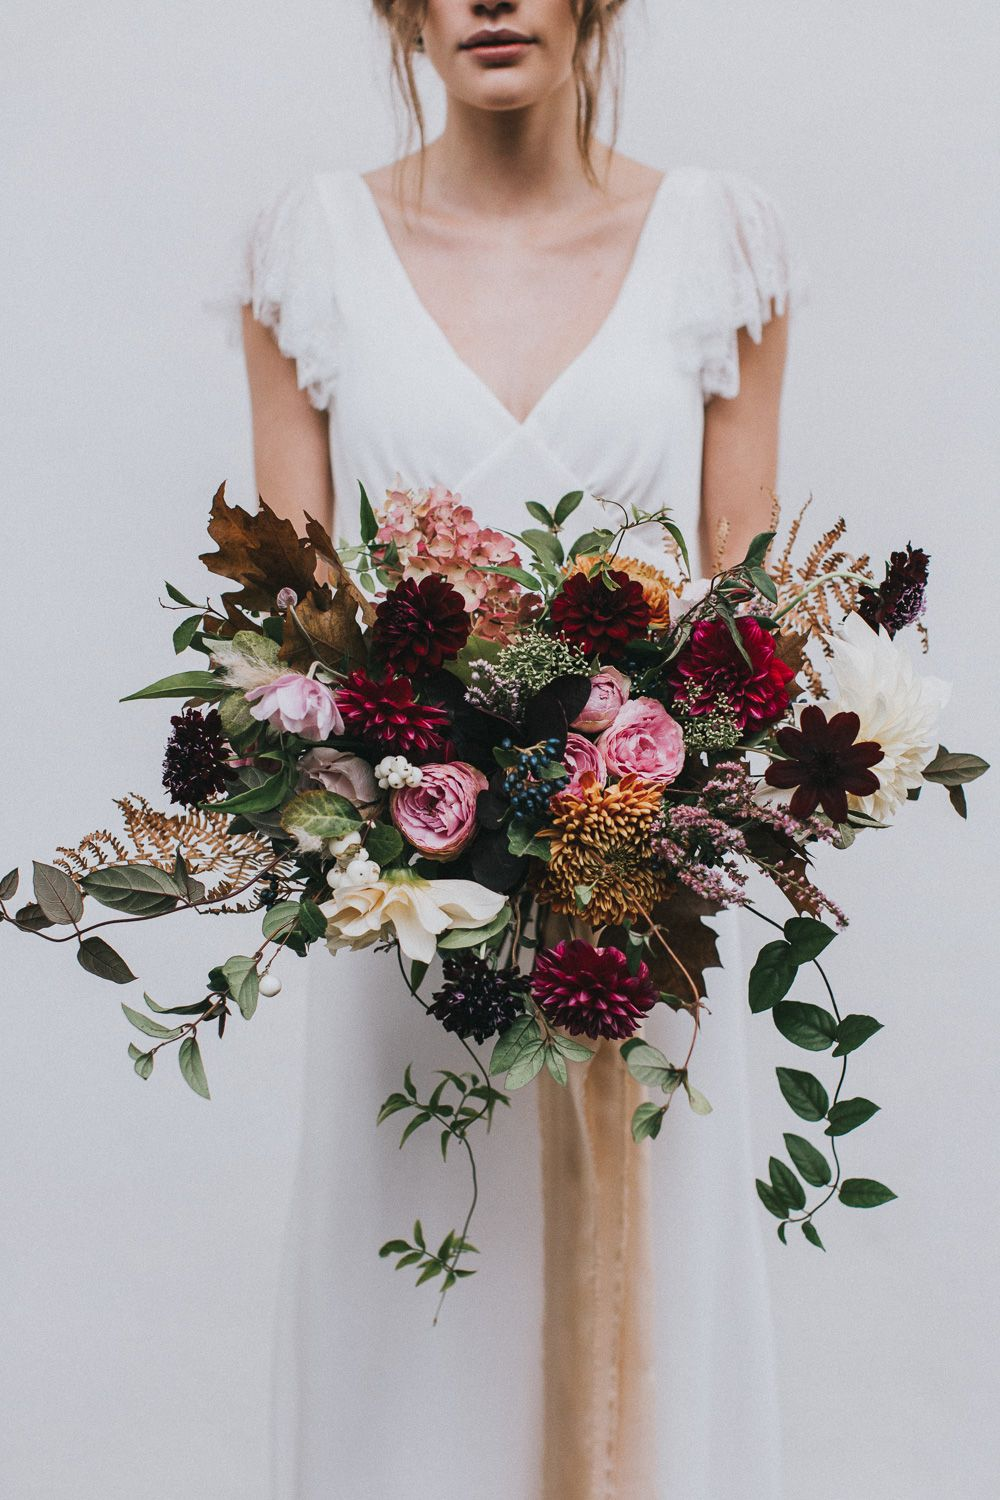 Autumnal wedding bouquet with jewel tones